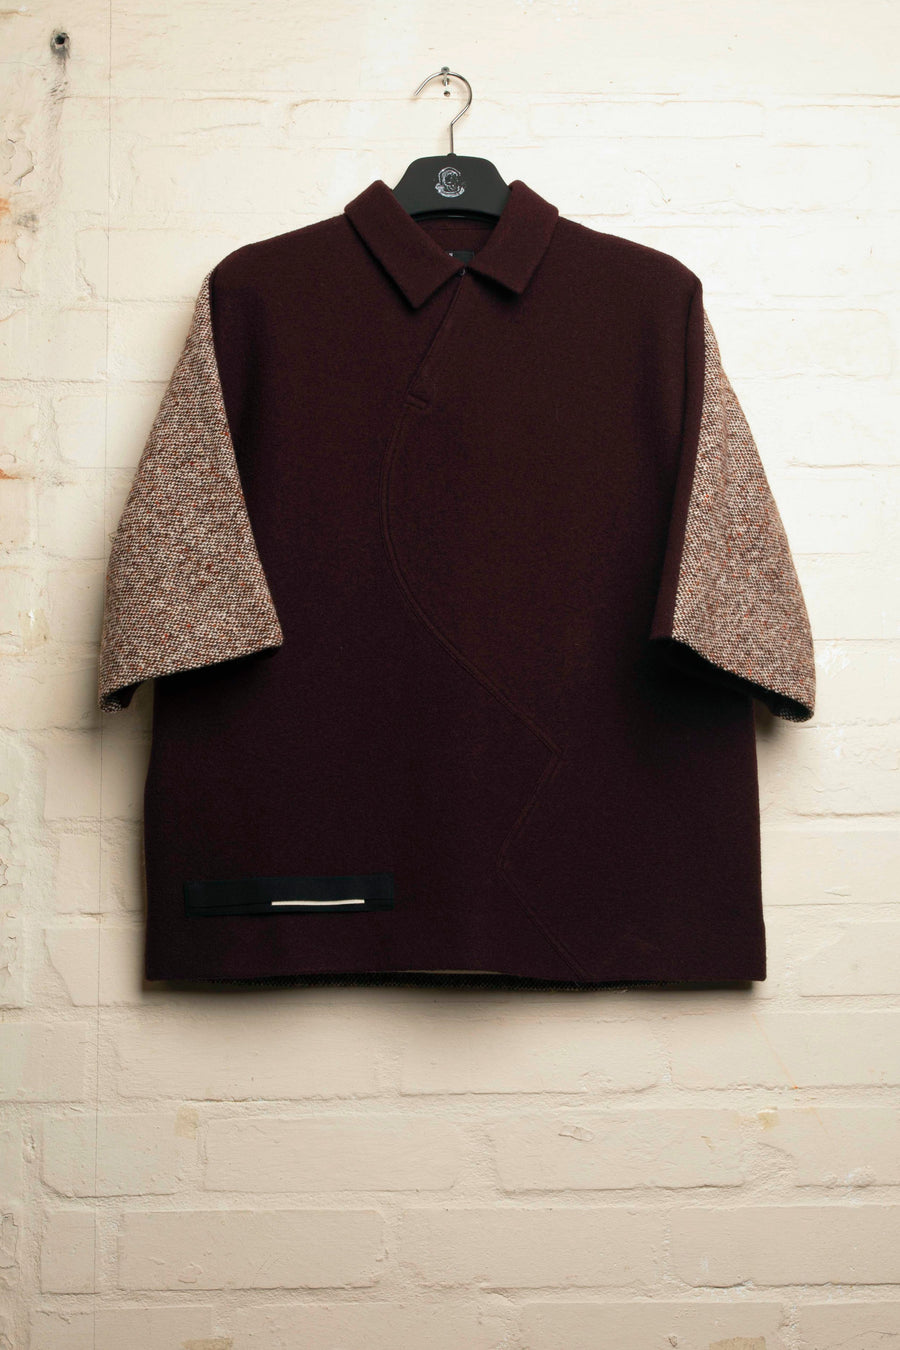 TORI – ENGLISH TWEED BACK TOP